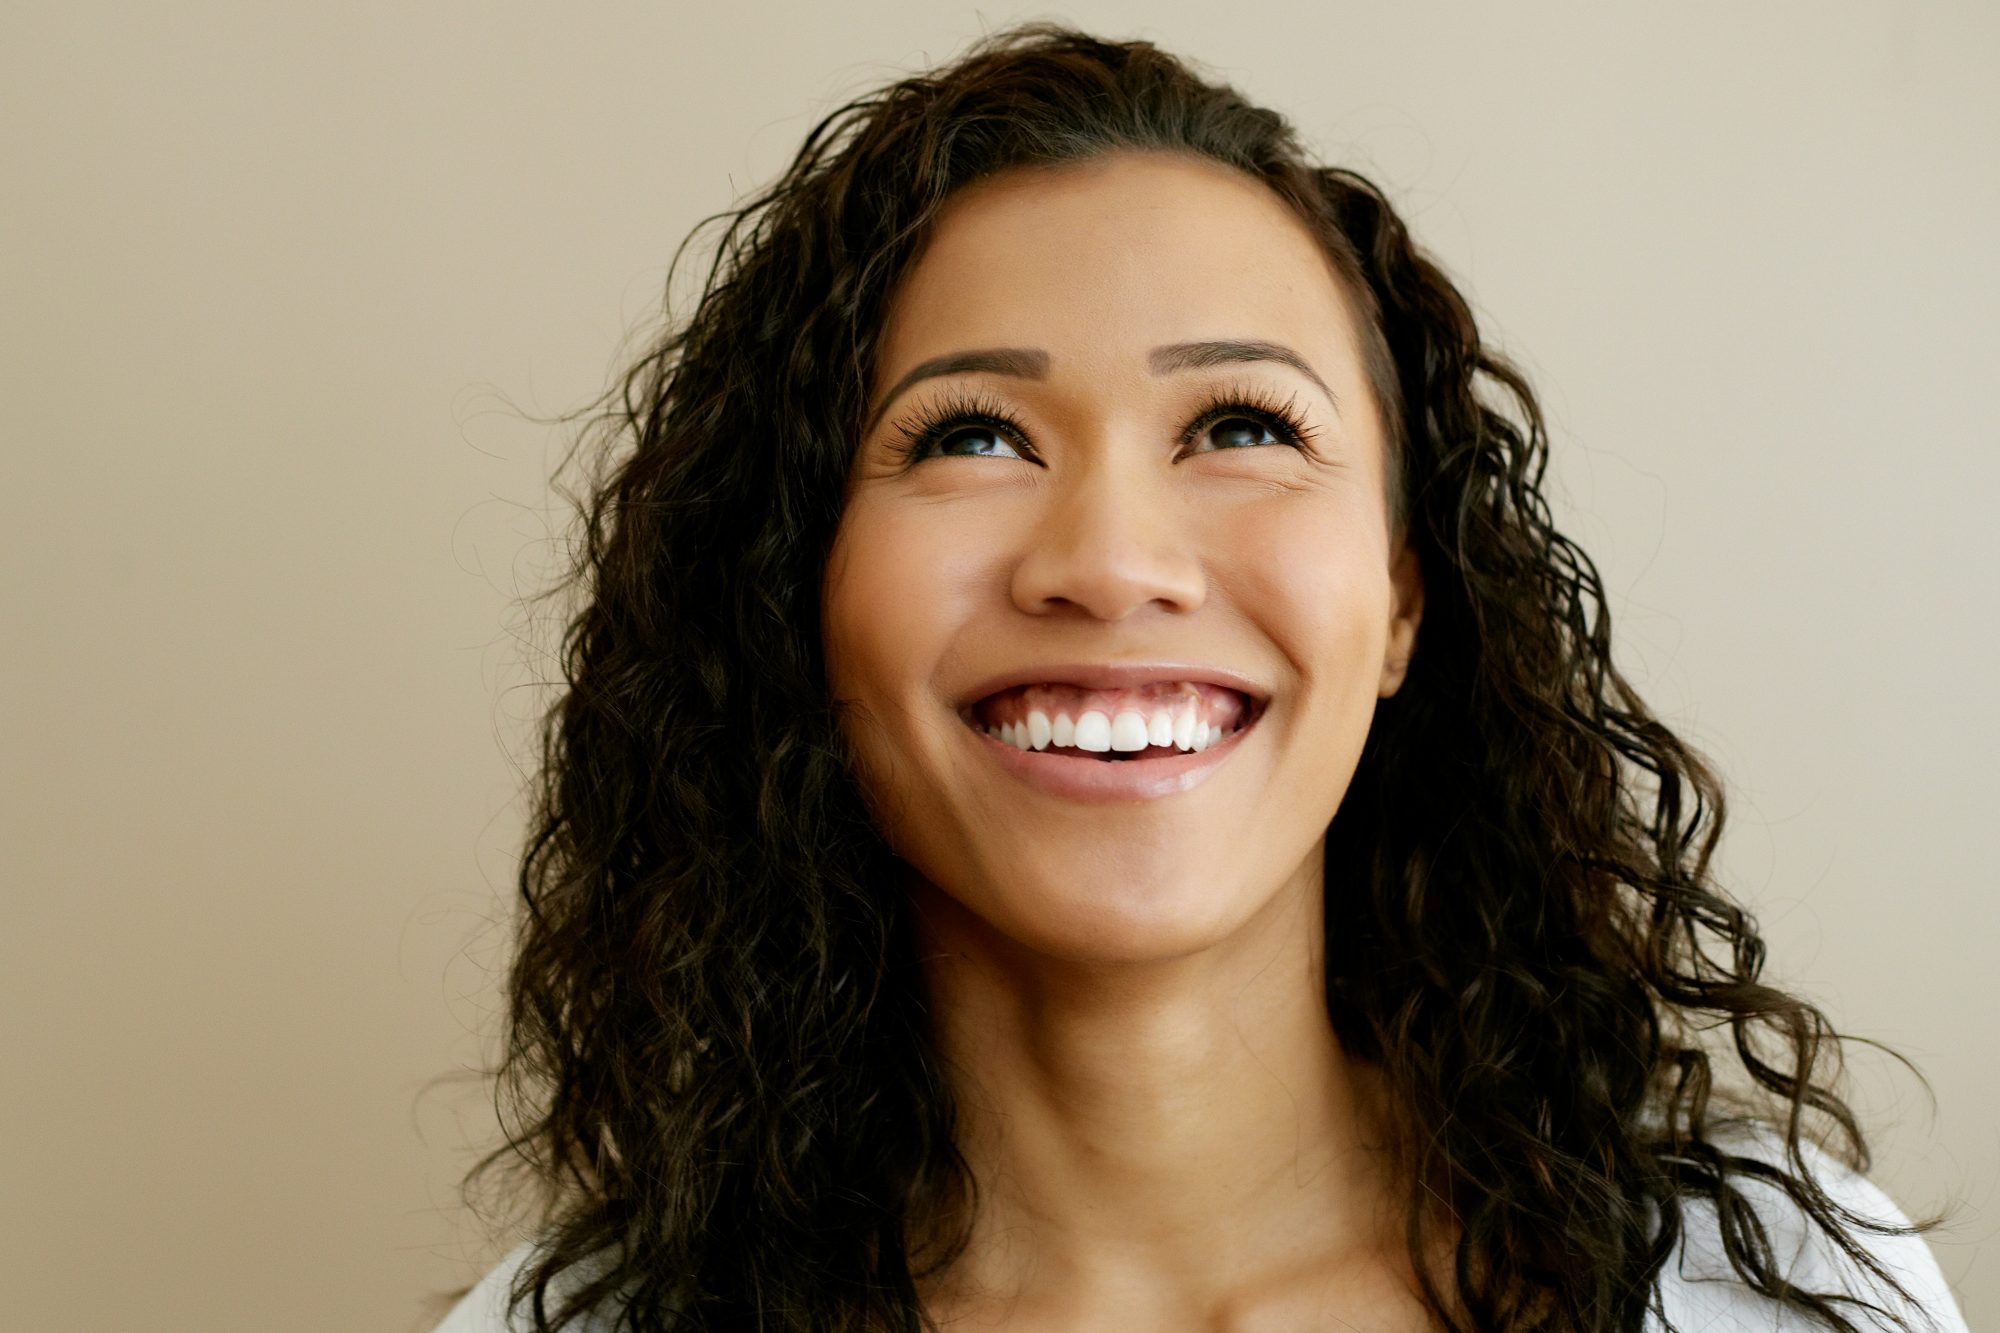 Woman smiling with long fluttery eyelashes